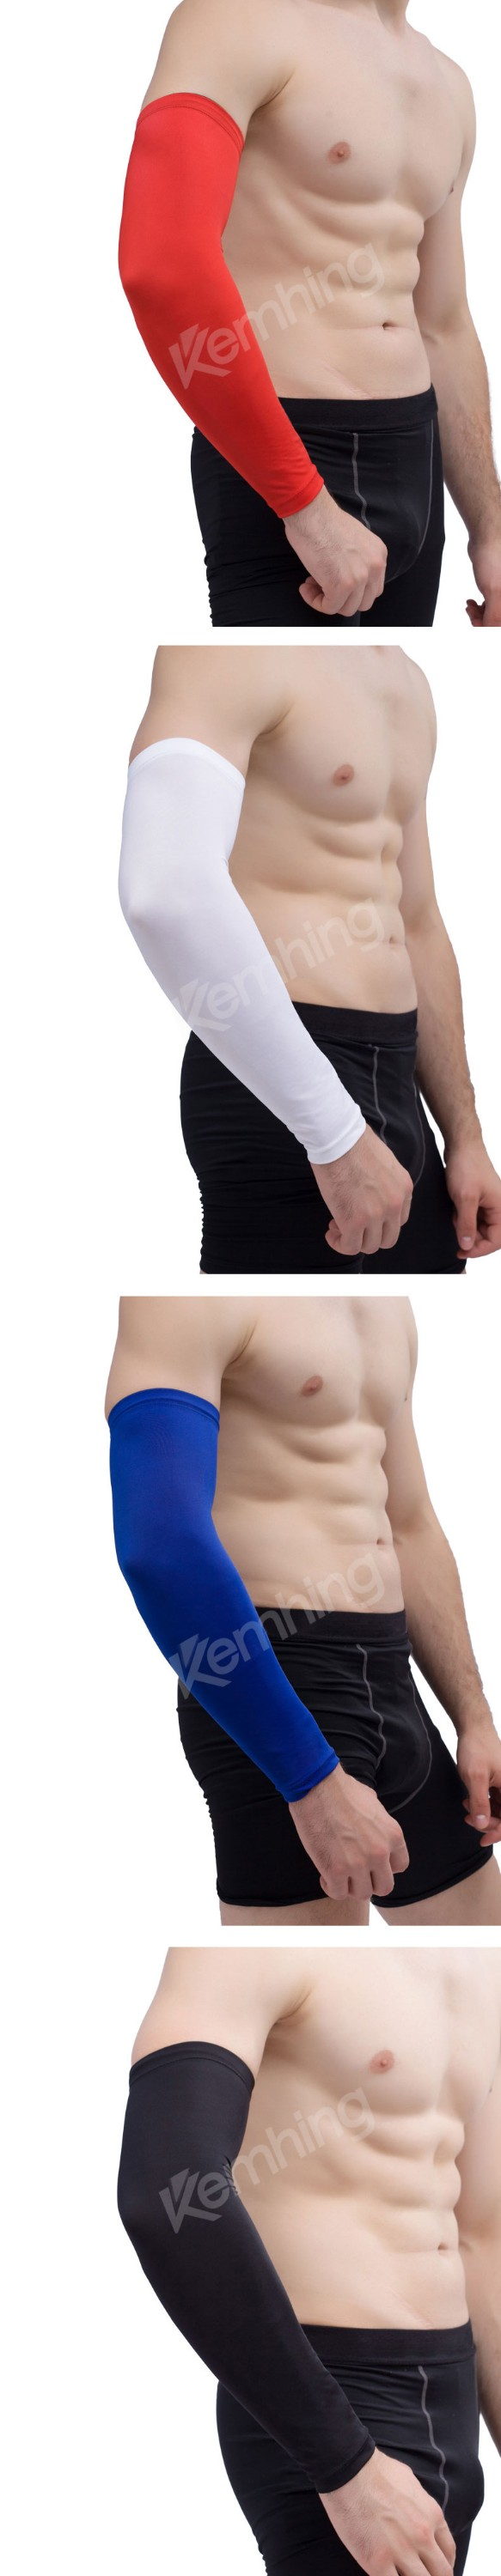 Custom compression arm sleeve Sports Black Arm Sleeves Cycling Basketball UV protector elbow sleeve